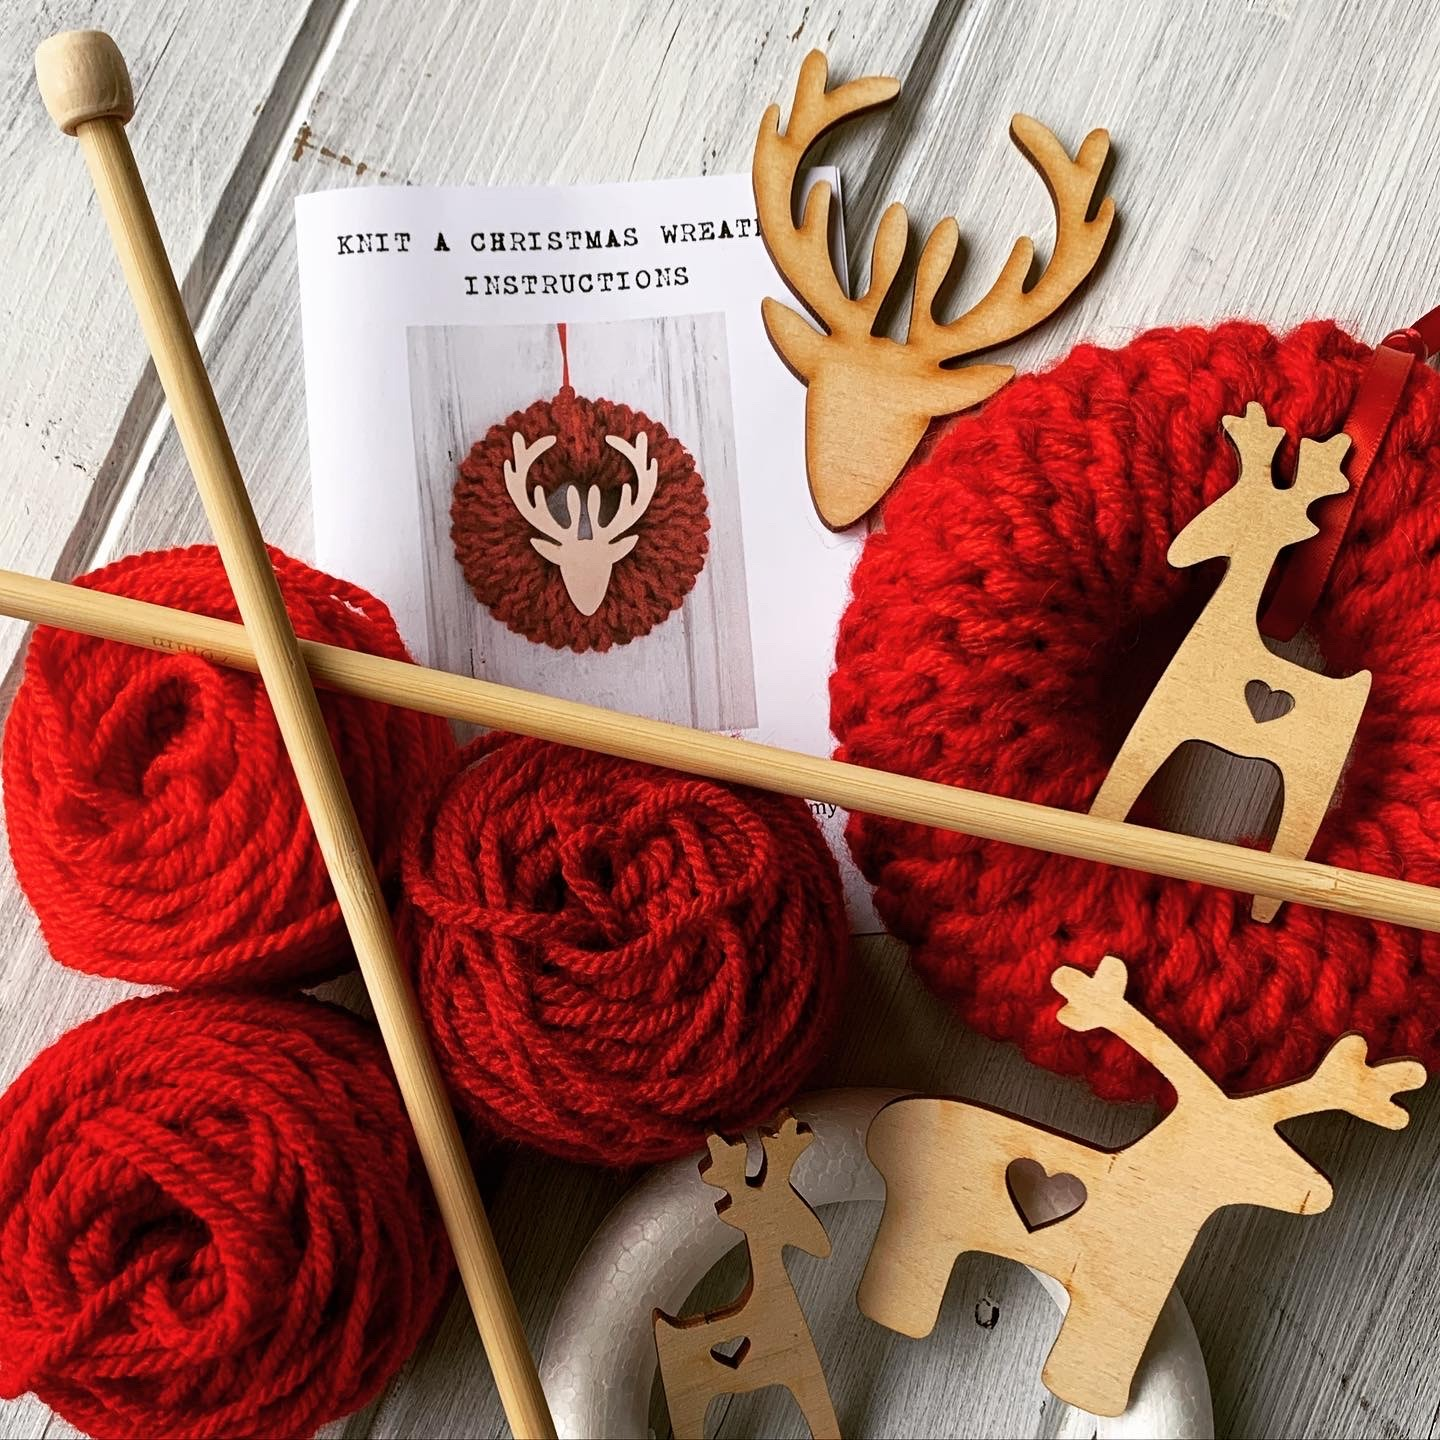 Knit Your Own Christmas Wreath Kits